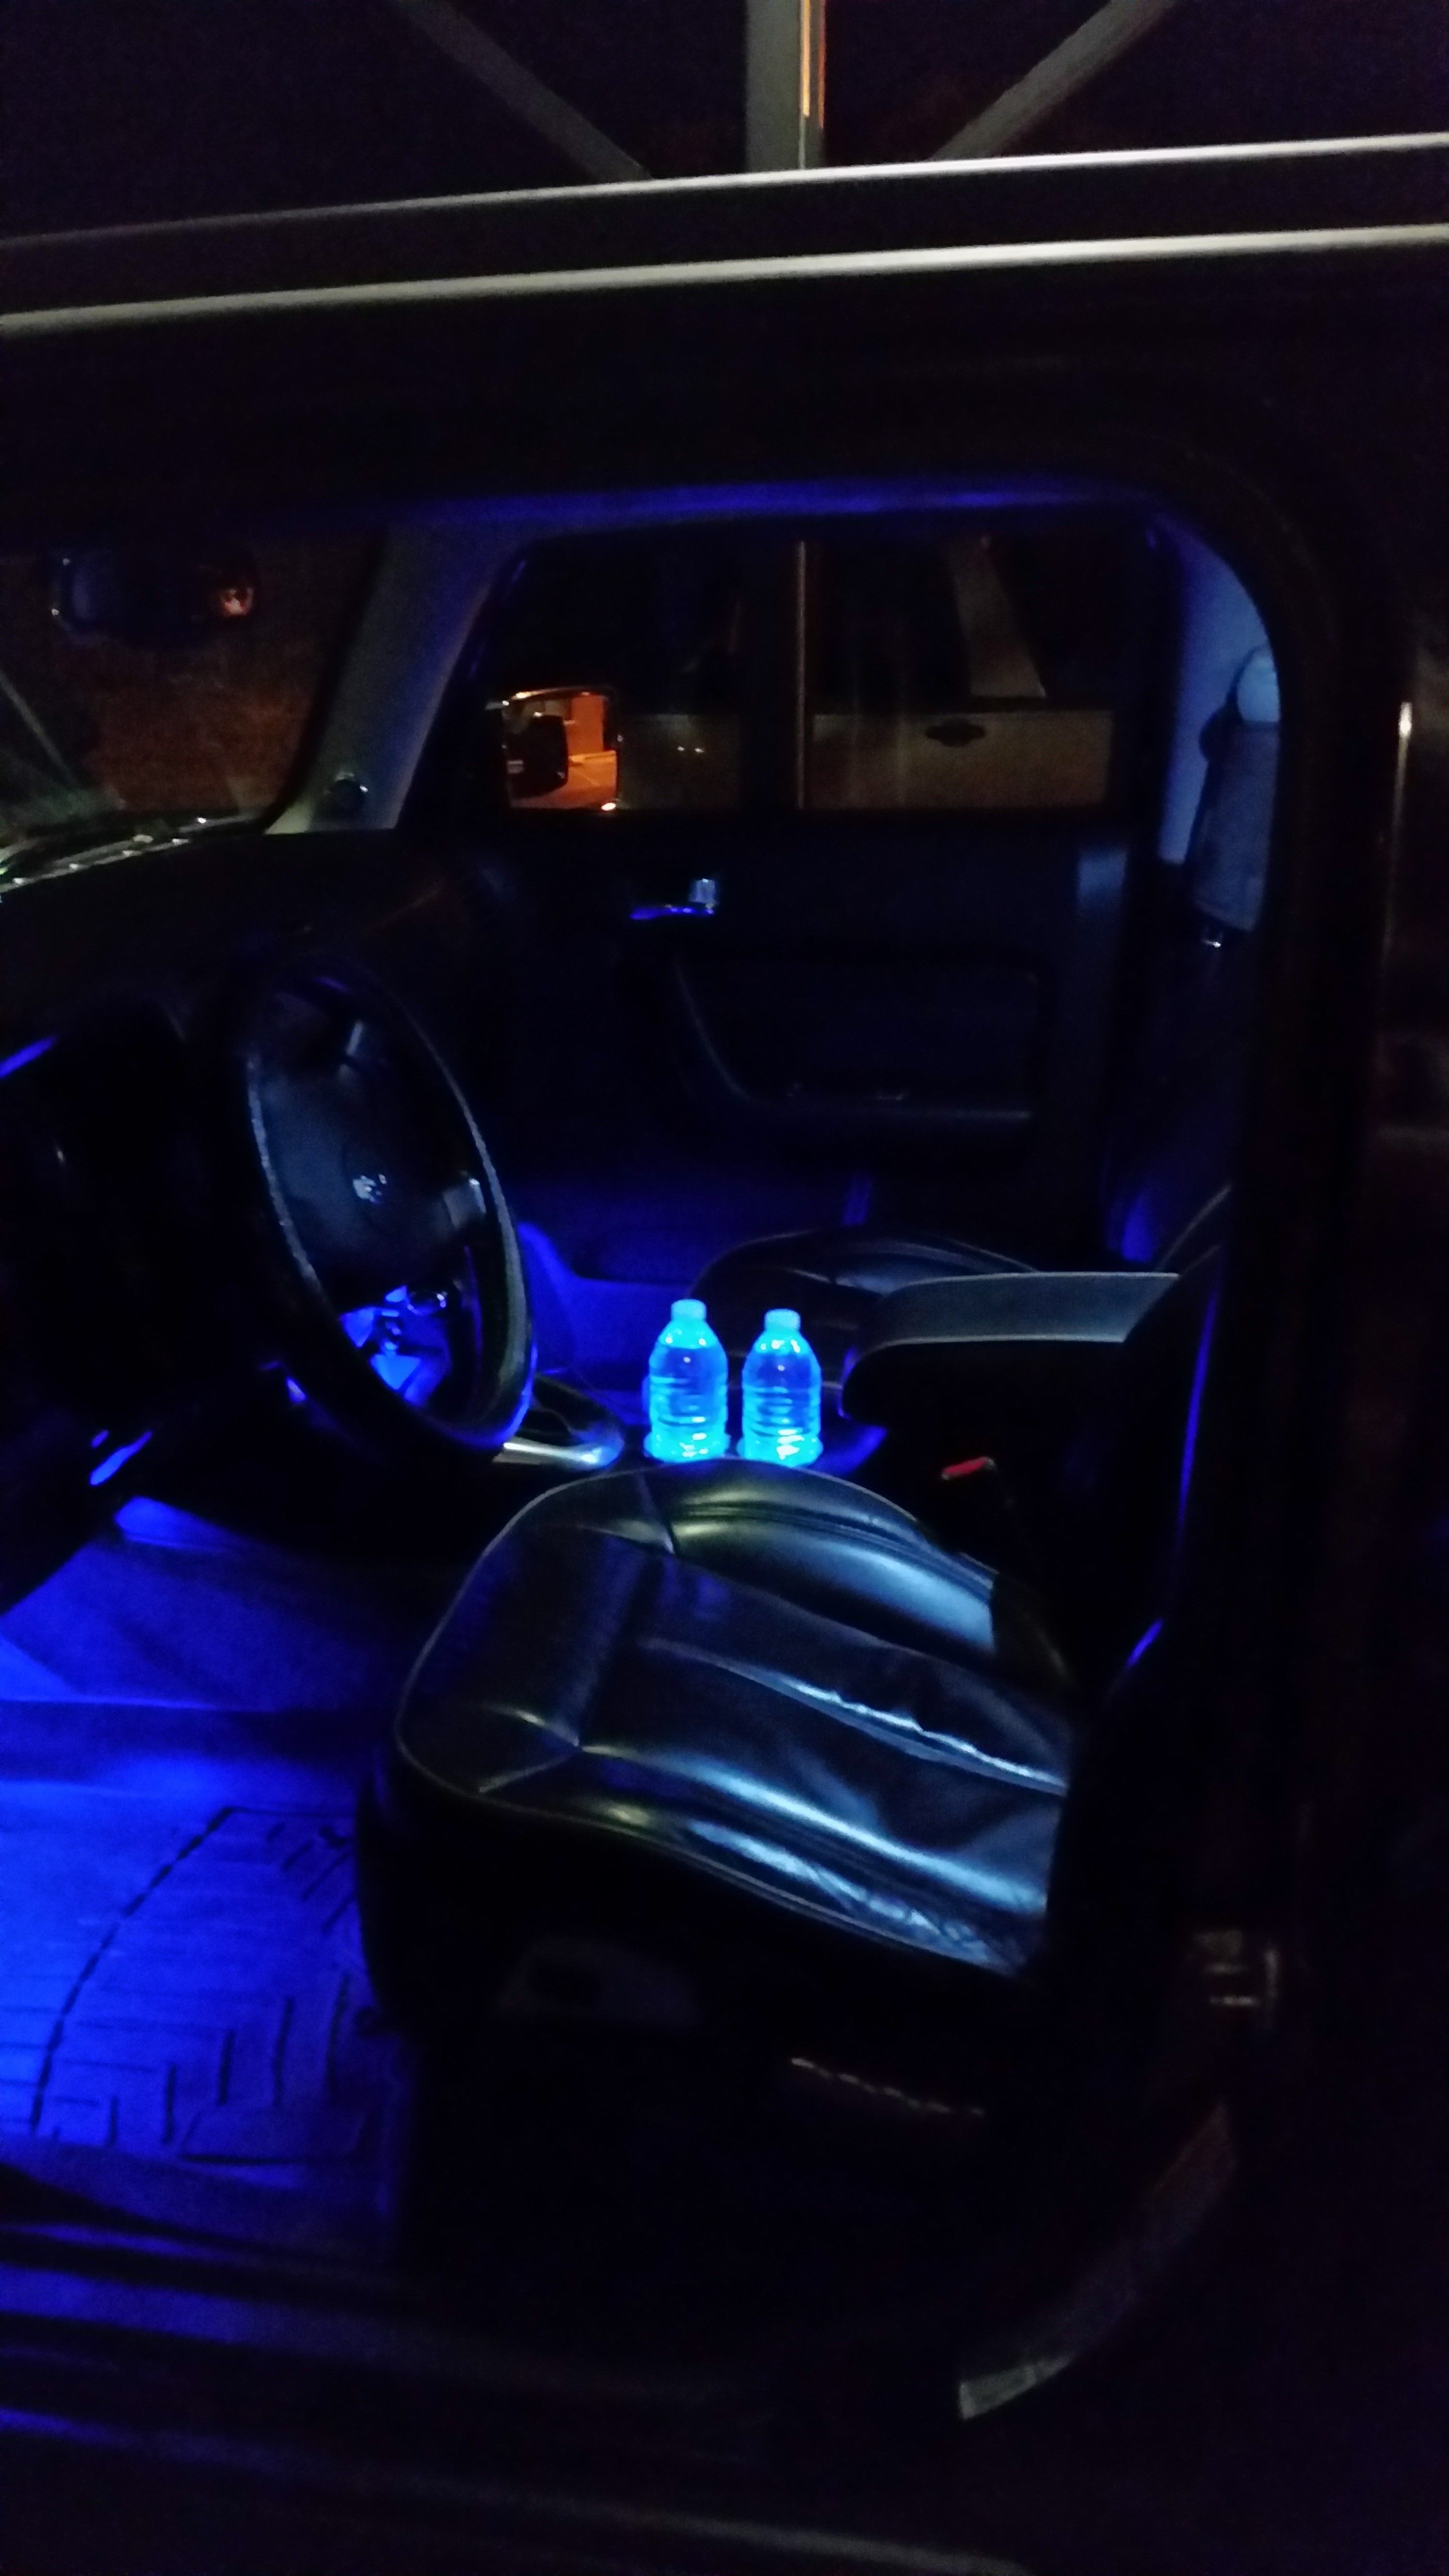 The Blue LED And LEDGlow Interior Lighting I Installed (weu0027re Not Done,